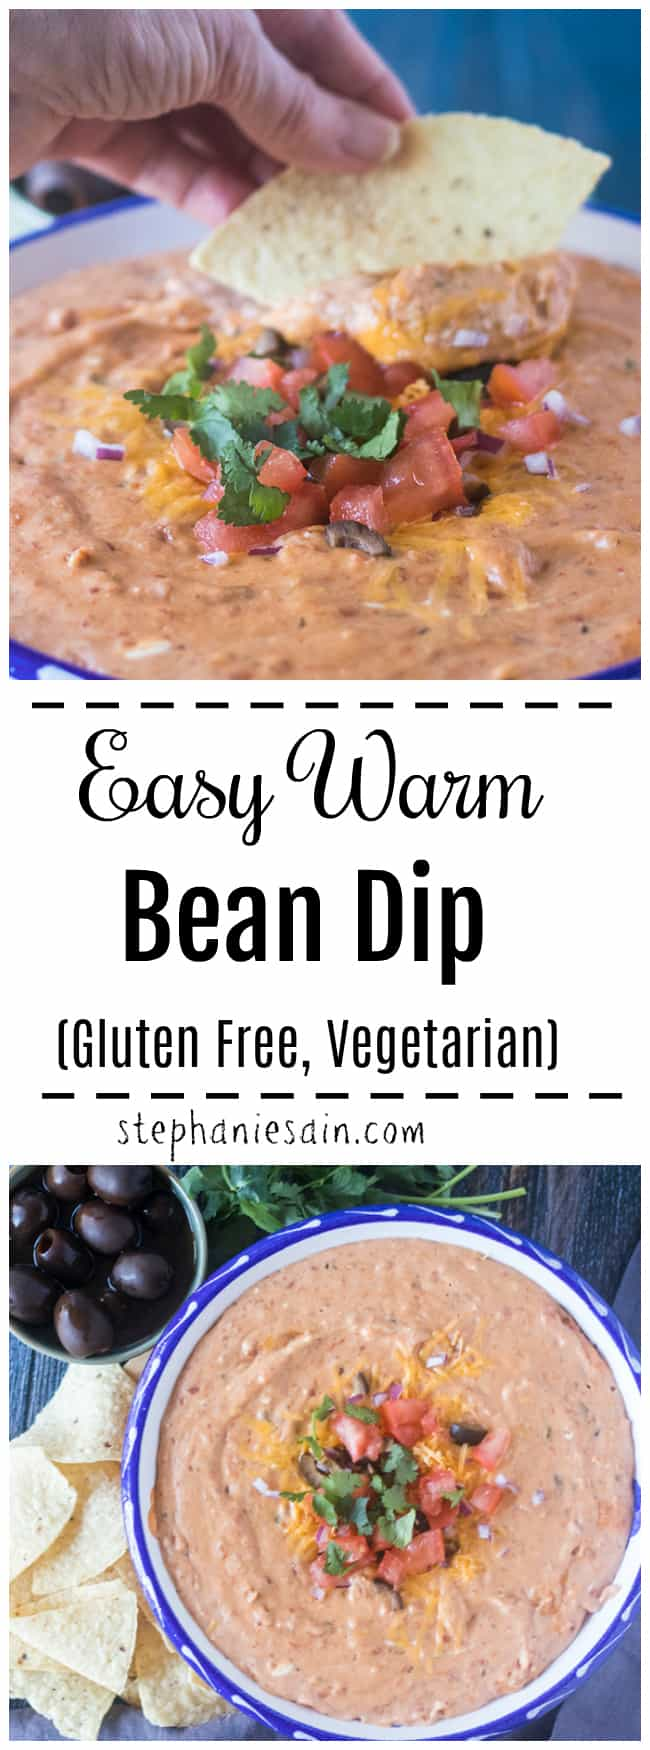 This Bean Dip is creamy, easy and delicious. Perfect for game day snacking, parties or gatherings. Made with only a few easy to find ingredients. Gluten Free, Vegetarian.